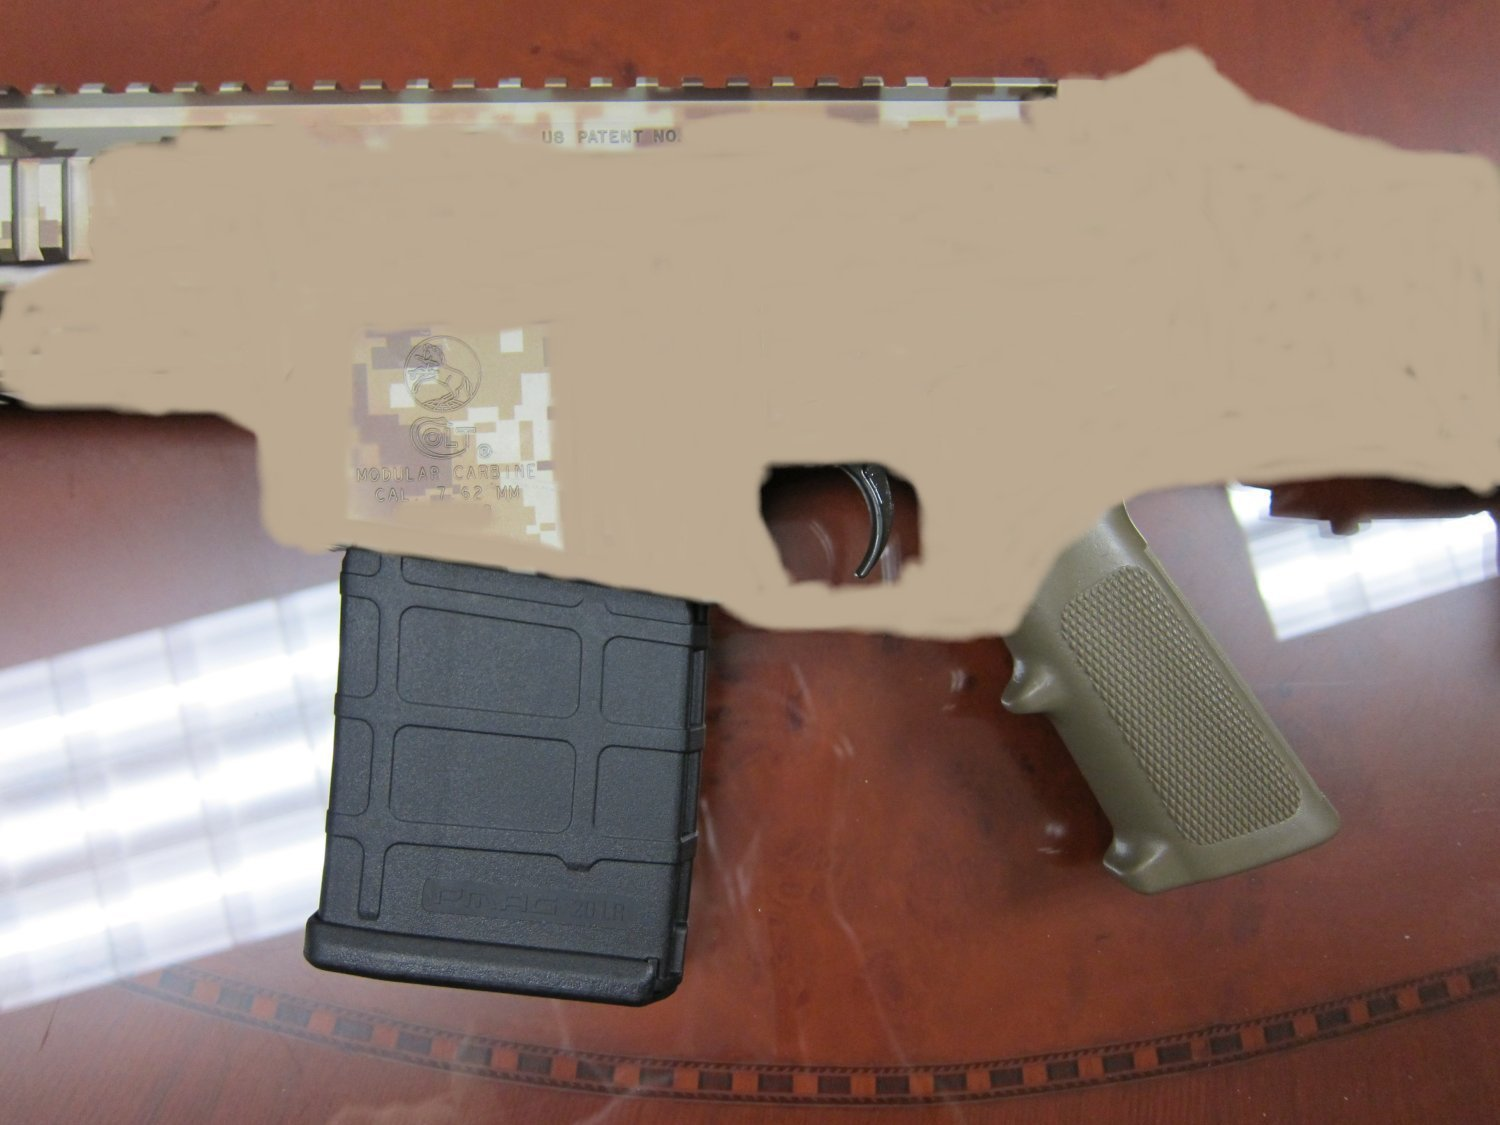 Colt CM901 Receivers and MagPul 7.62mm PMAG Sterilized 1 <!  :en  >DR Exclusive: Colt CM901 7.62x51mm NATO (7.62mm NATO)/.308 Win. Modular Battle Carbine/Rifle Magazine Revealed in Pictures (Photos!): Is it the MagPul PMAG 20LR 7.62mm Magazine?  Read and See! <!  :  >